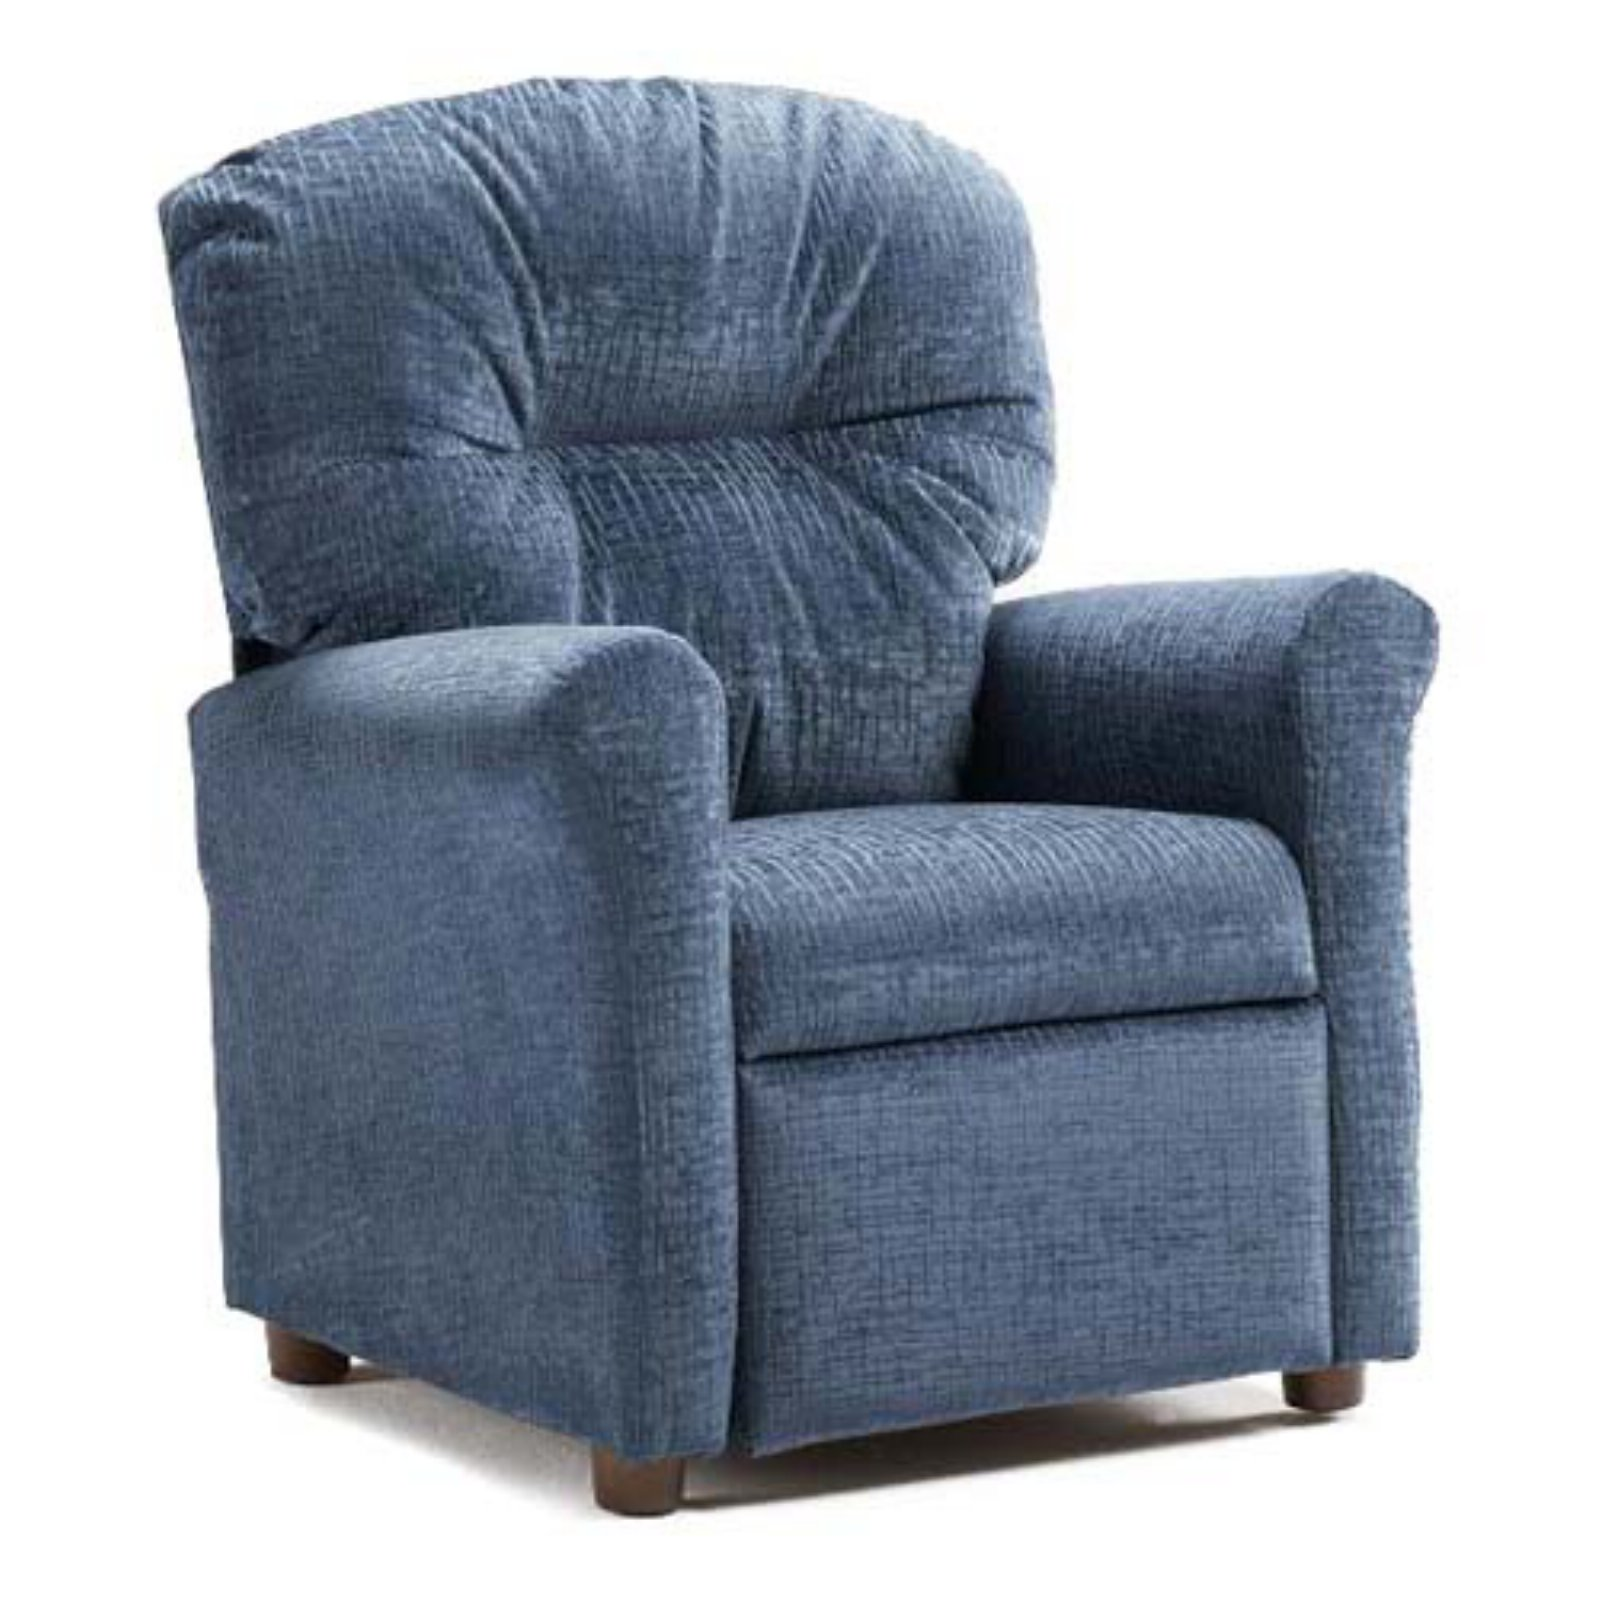 Brazil Furniture No Button Child Recliner - Walmart.com